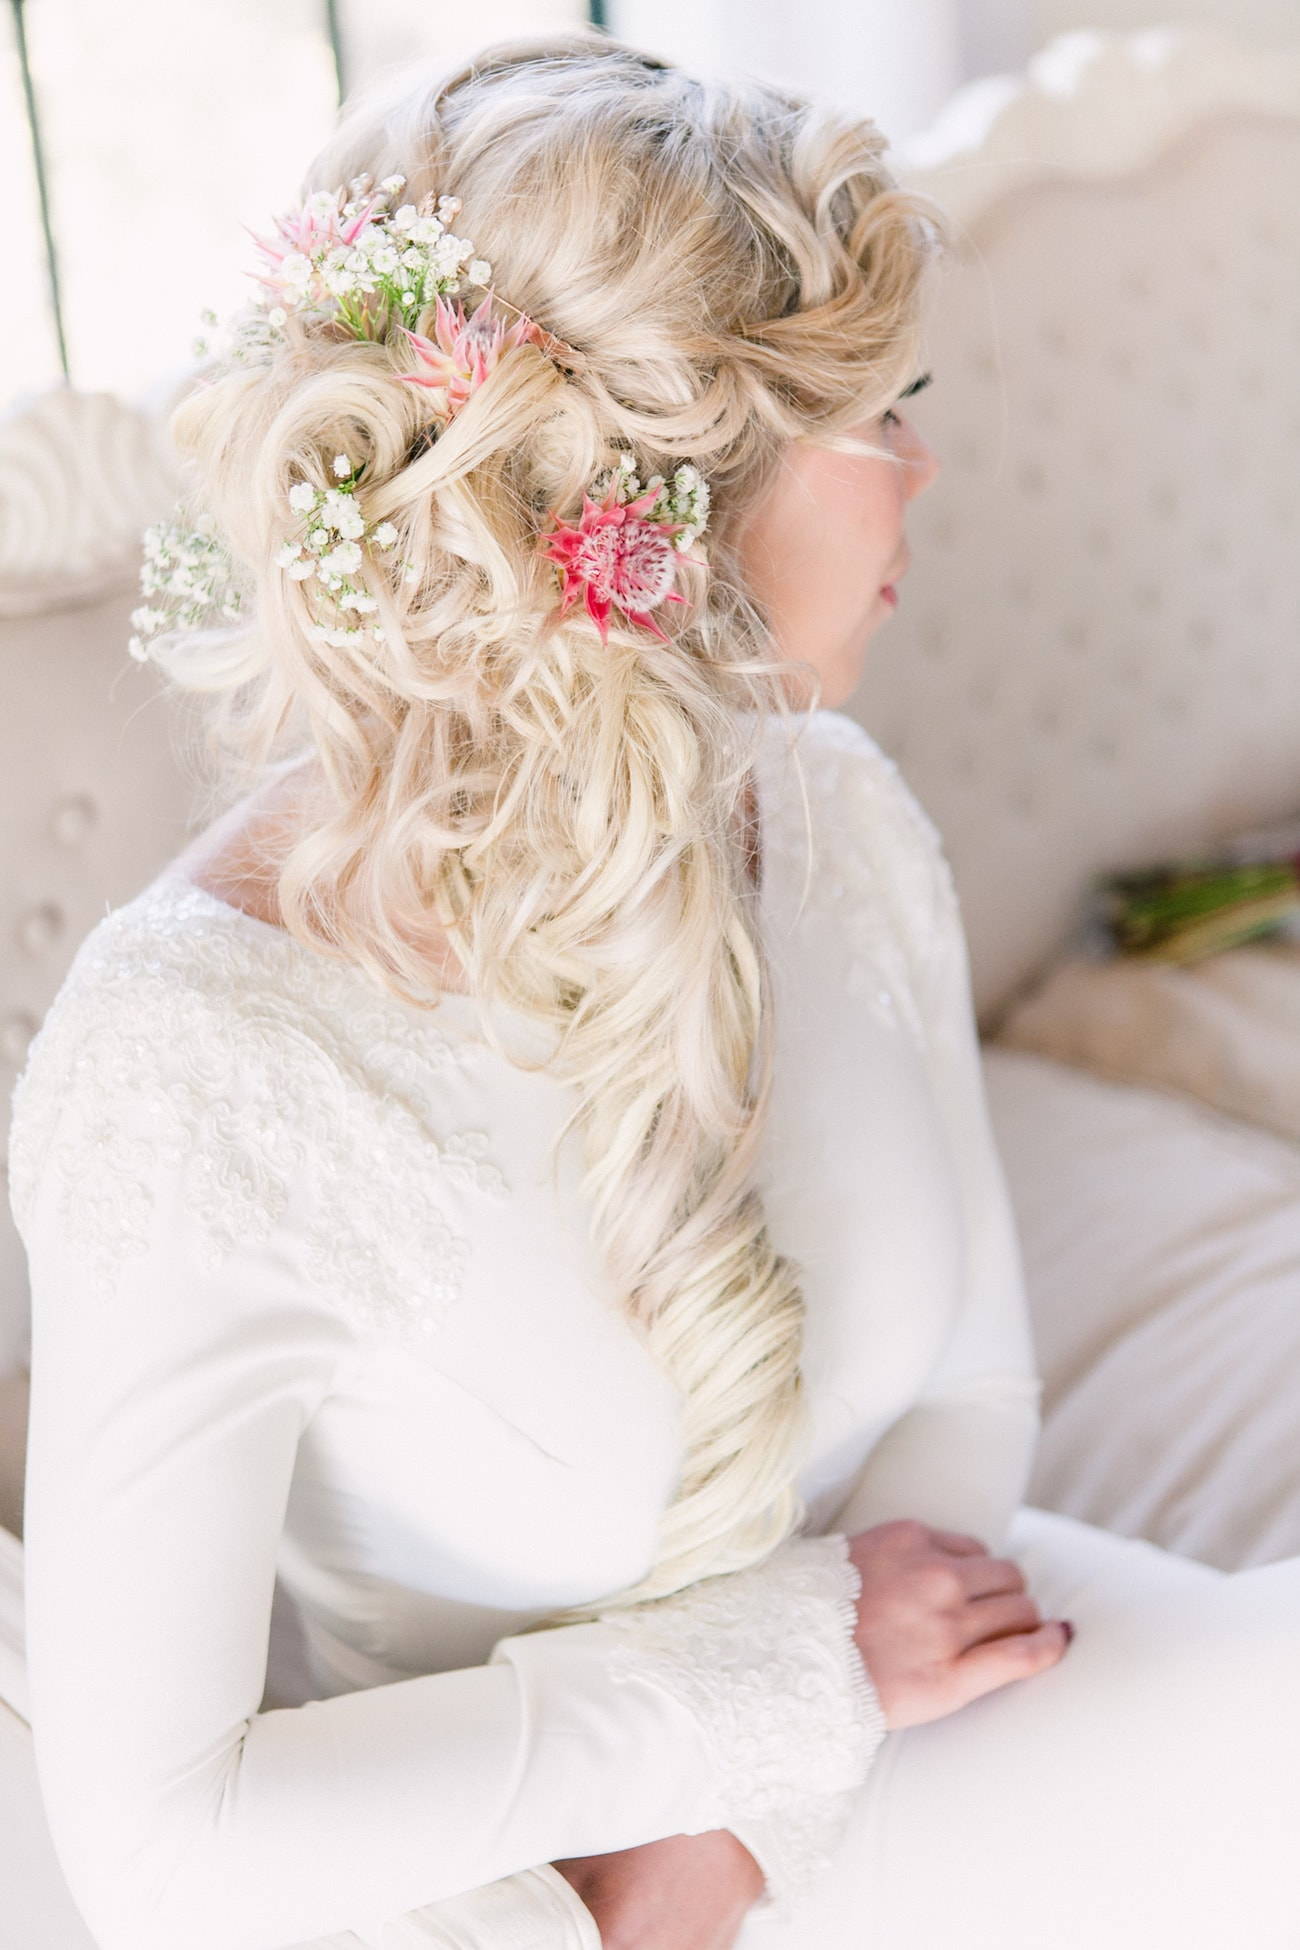 Floral Ponytail | Joyous Jewel Tone Winter Wedding | Credit: Dust and Dreams Photography